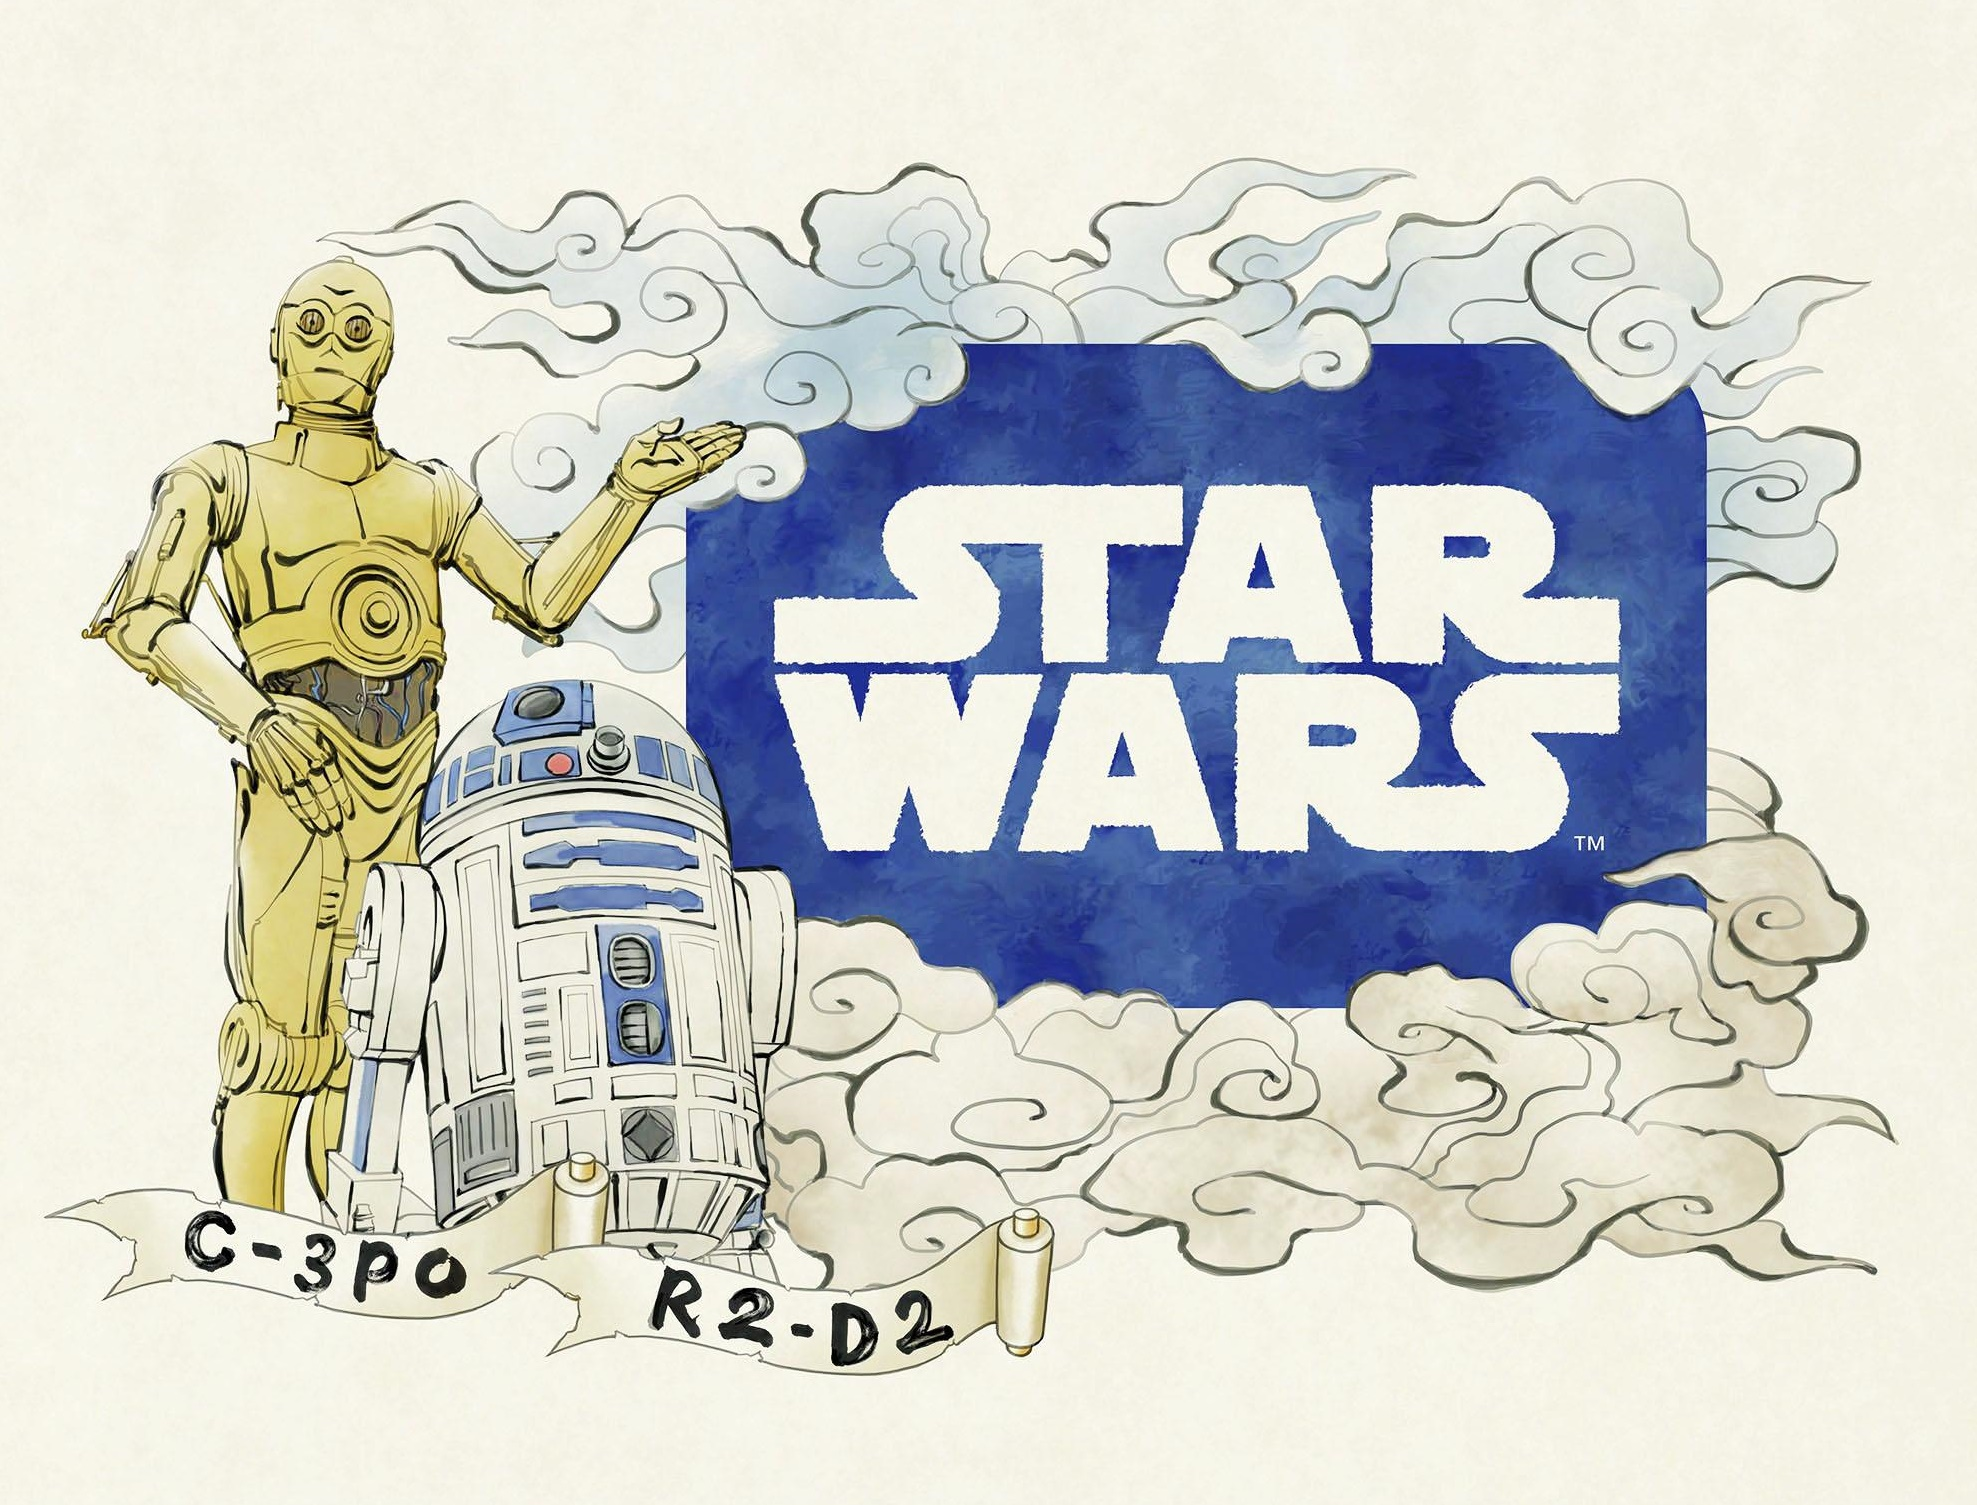 Aomori festival won't let 'Star Wars' floats join parade.